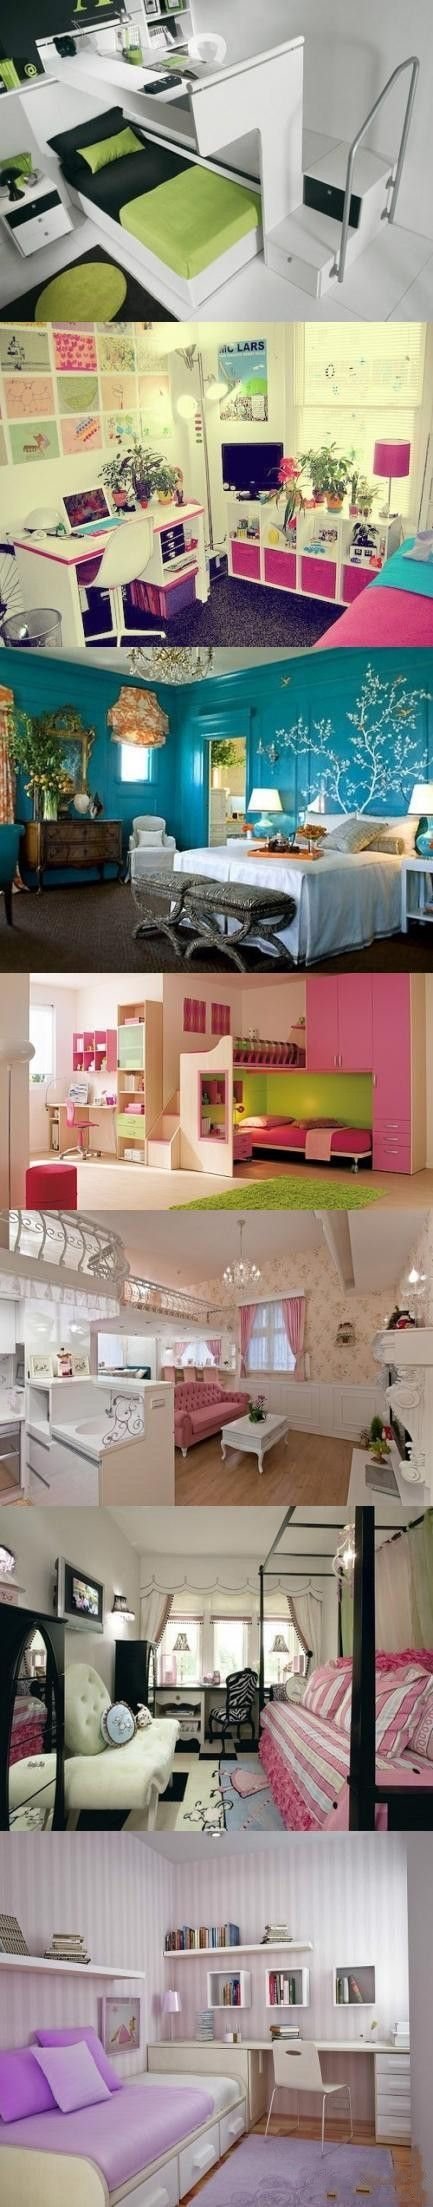 Really cute room ideas.